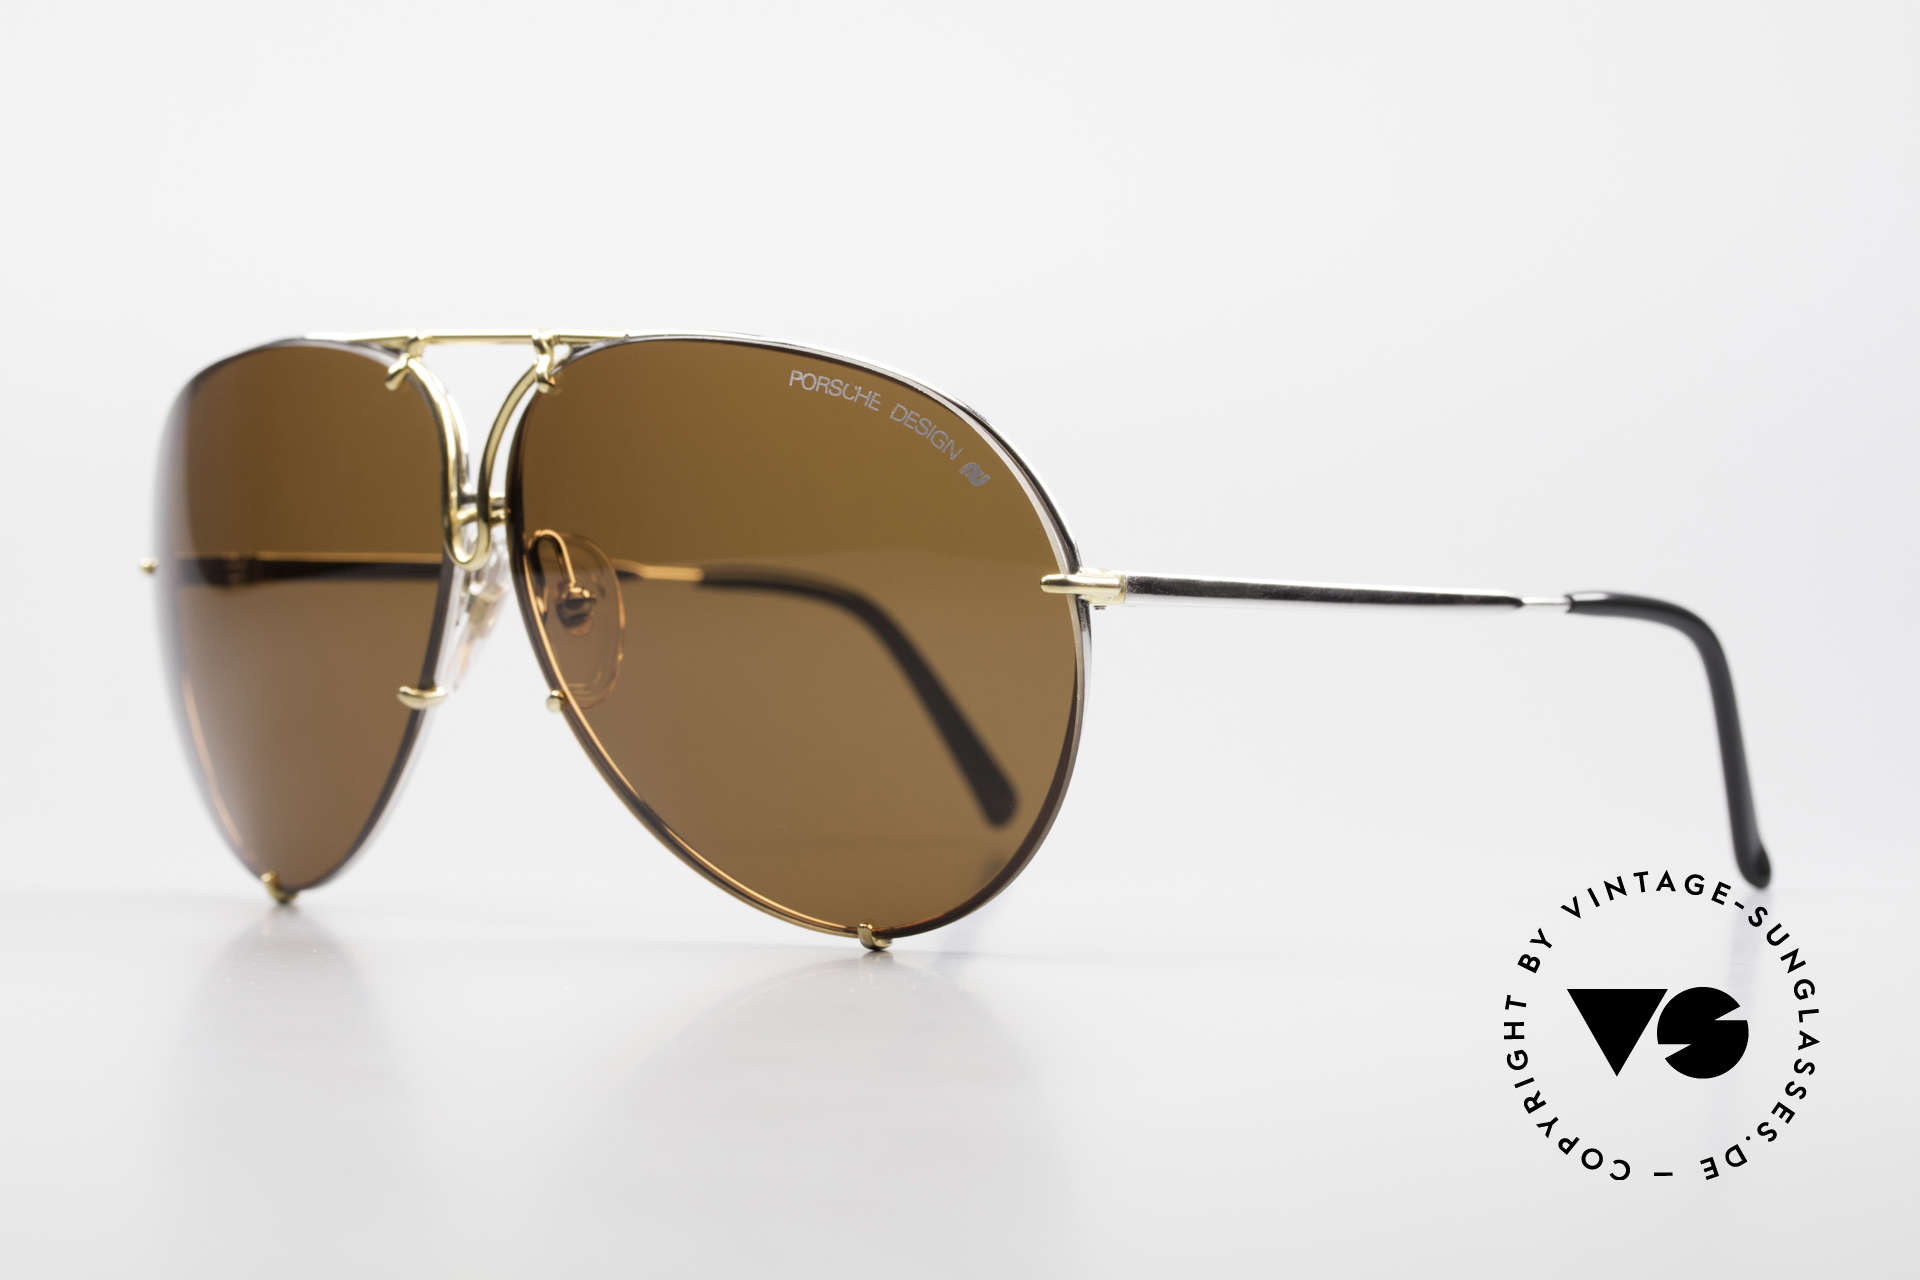 Porsche 5621 Oversized 80's Aviator Shades, old original incl. changeable lenses and Porsche case, Made for Men and Women